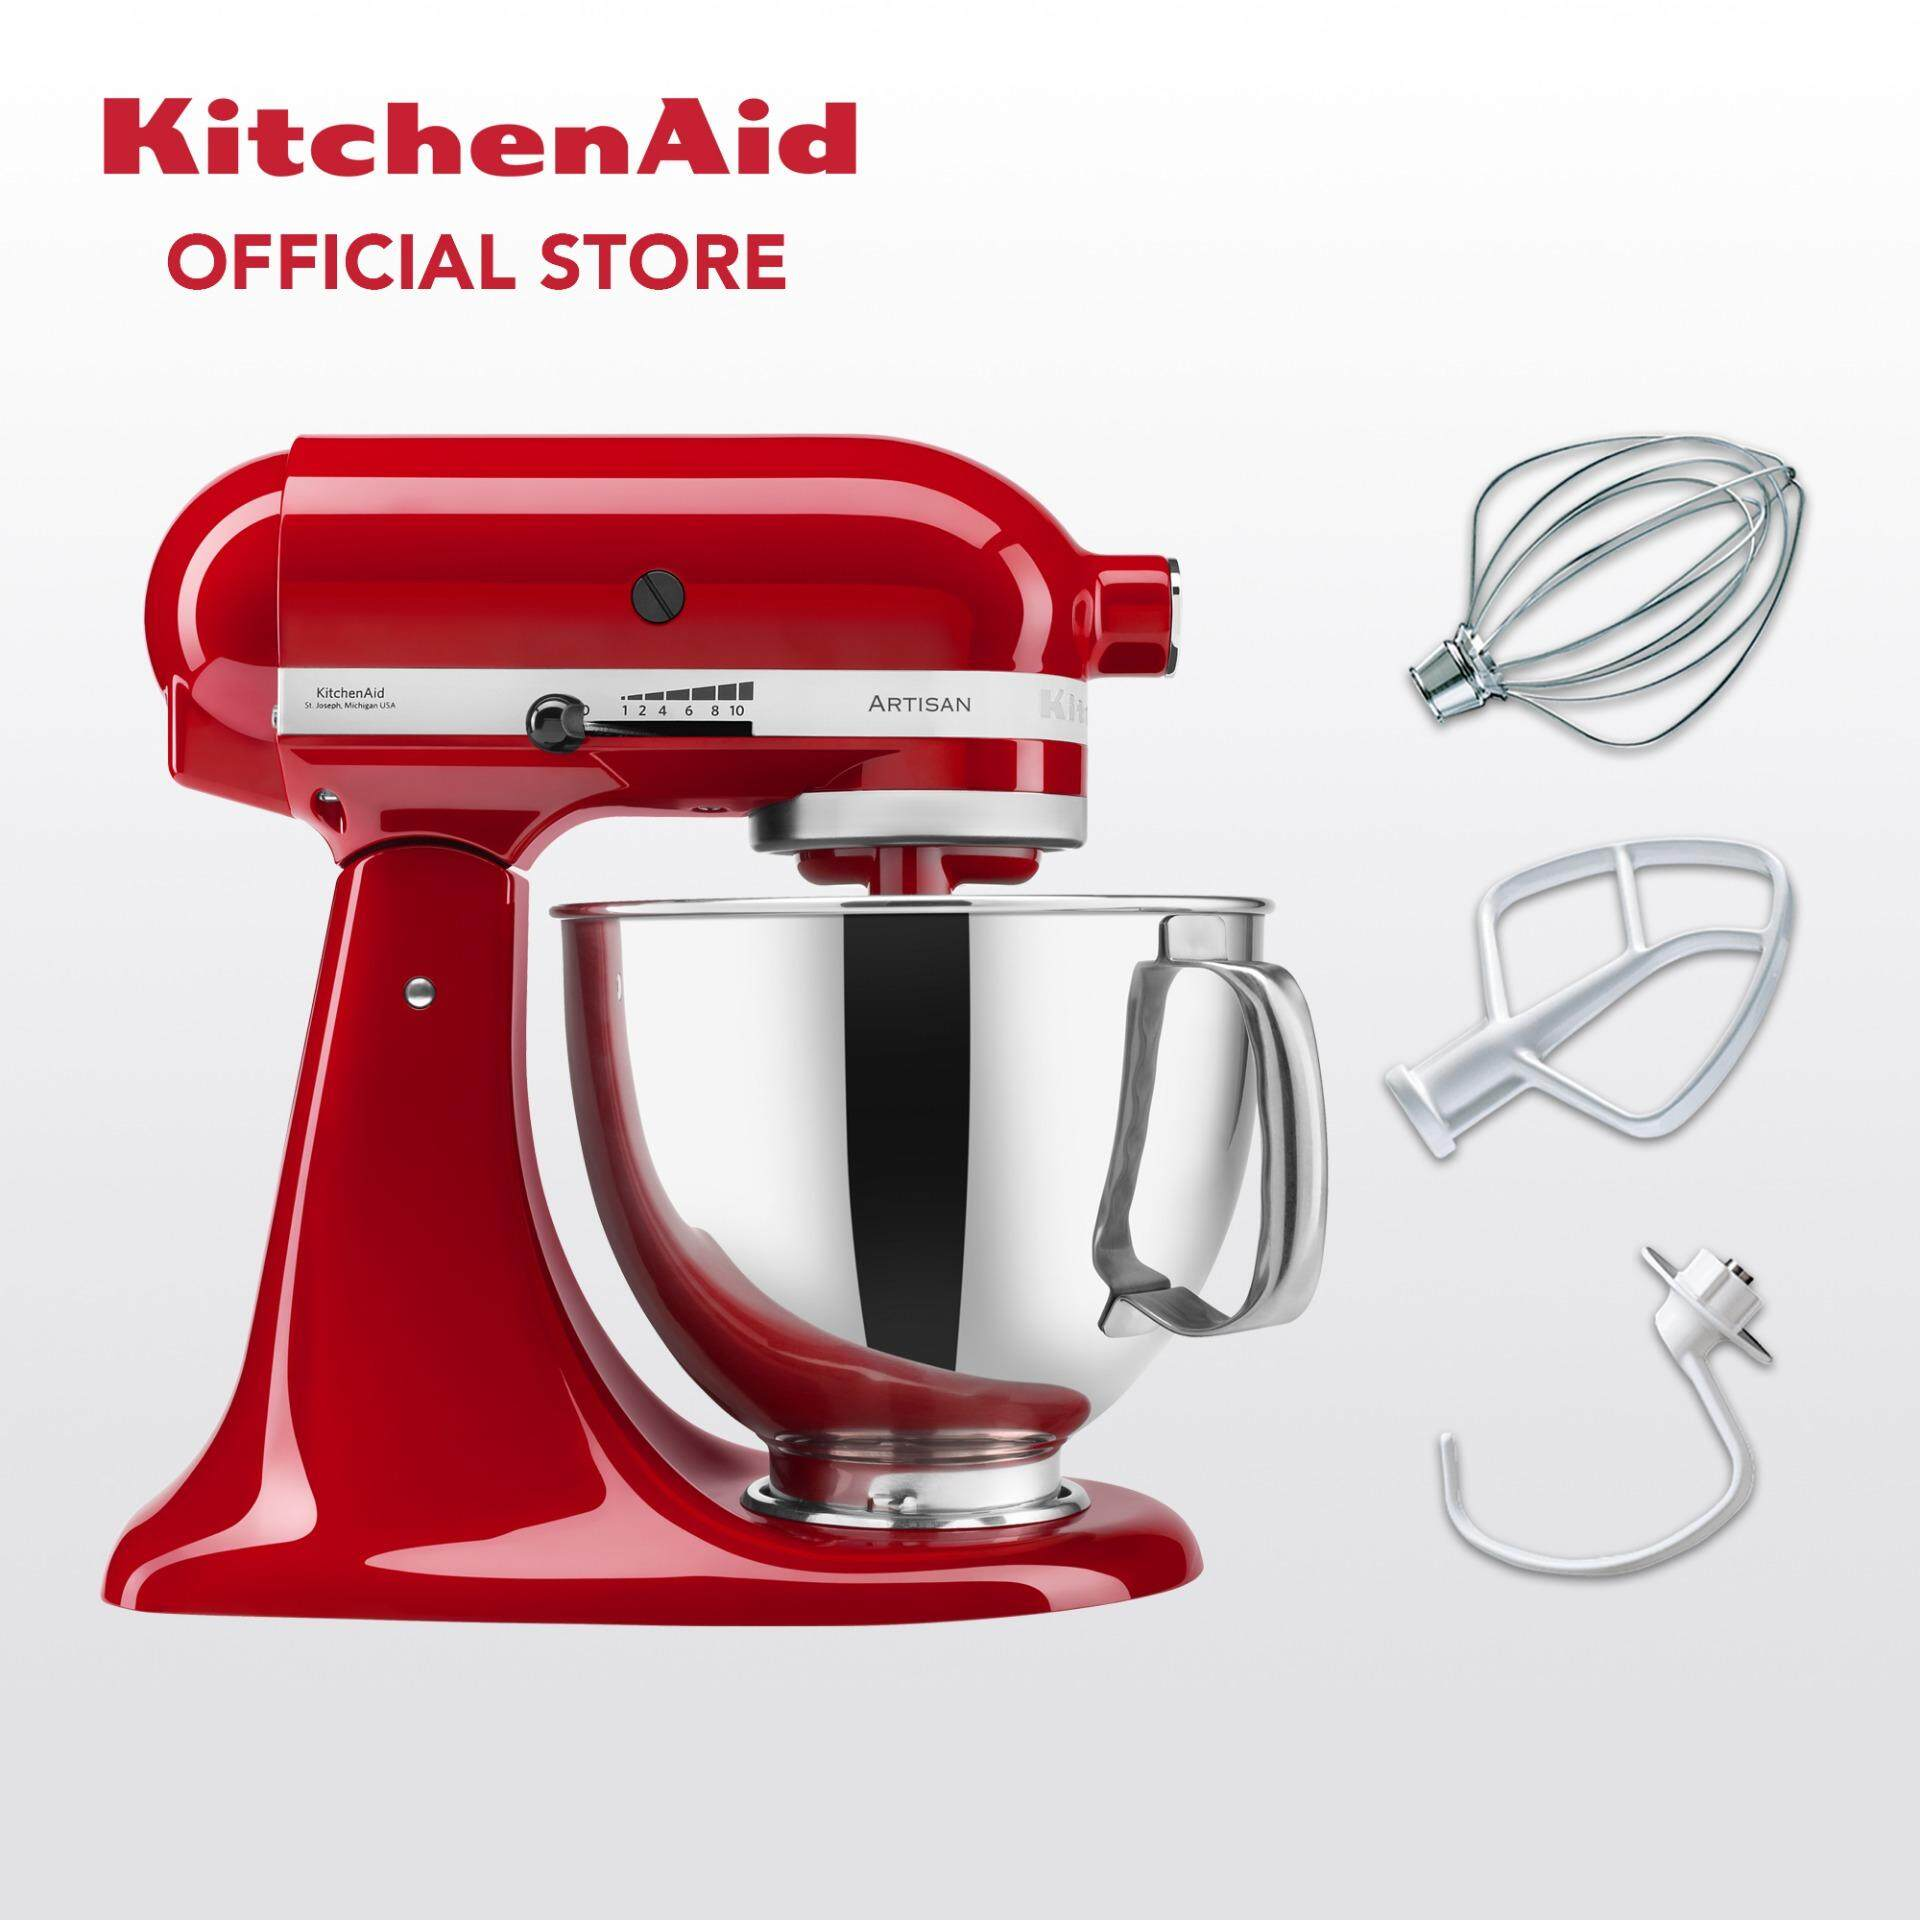 Kitchenaid Household Products With Best Price In Malaysia